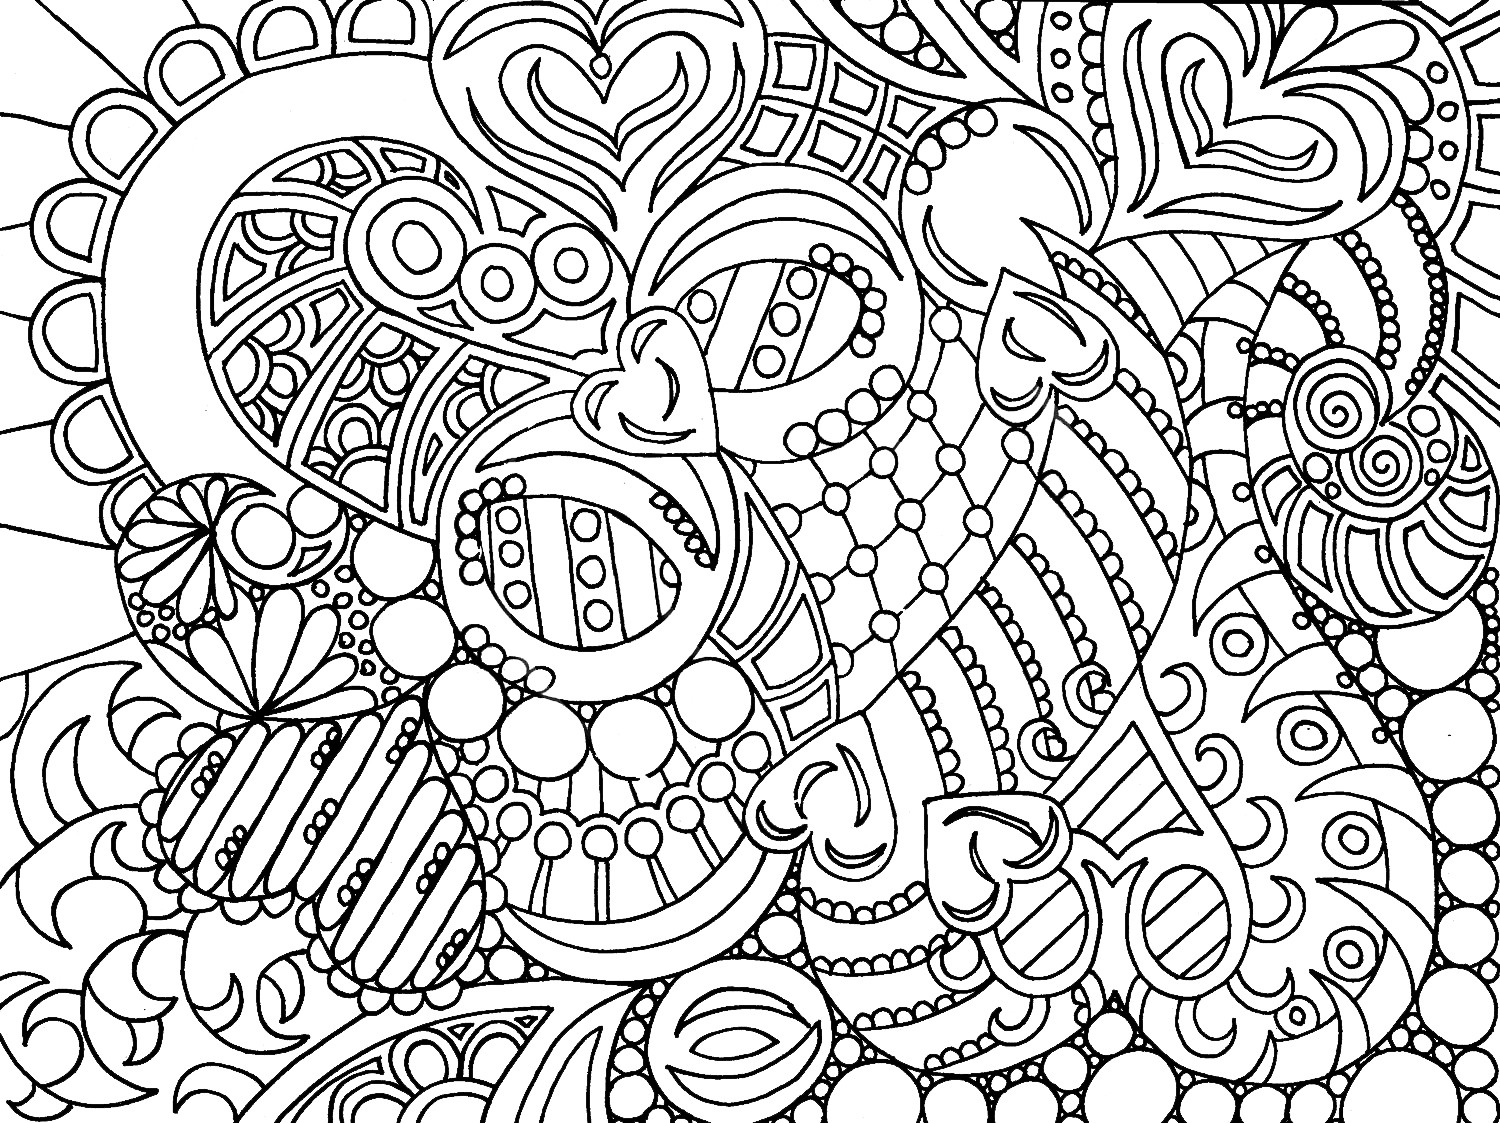 Printable Coloring Pages Adults Free  free coloring pages for adults